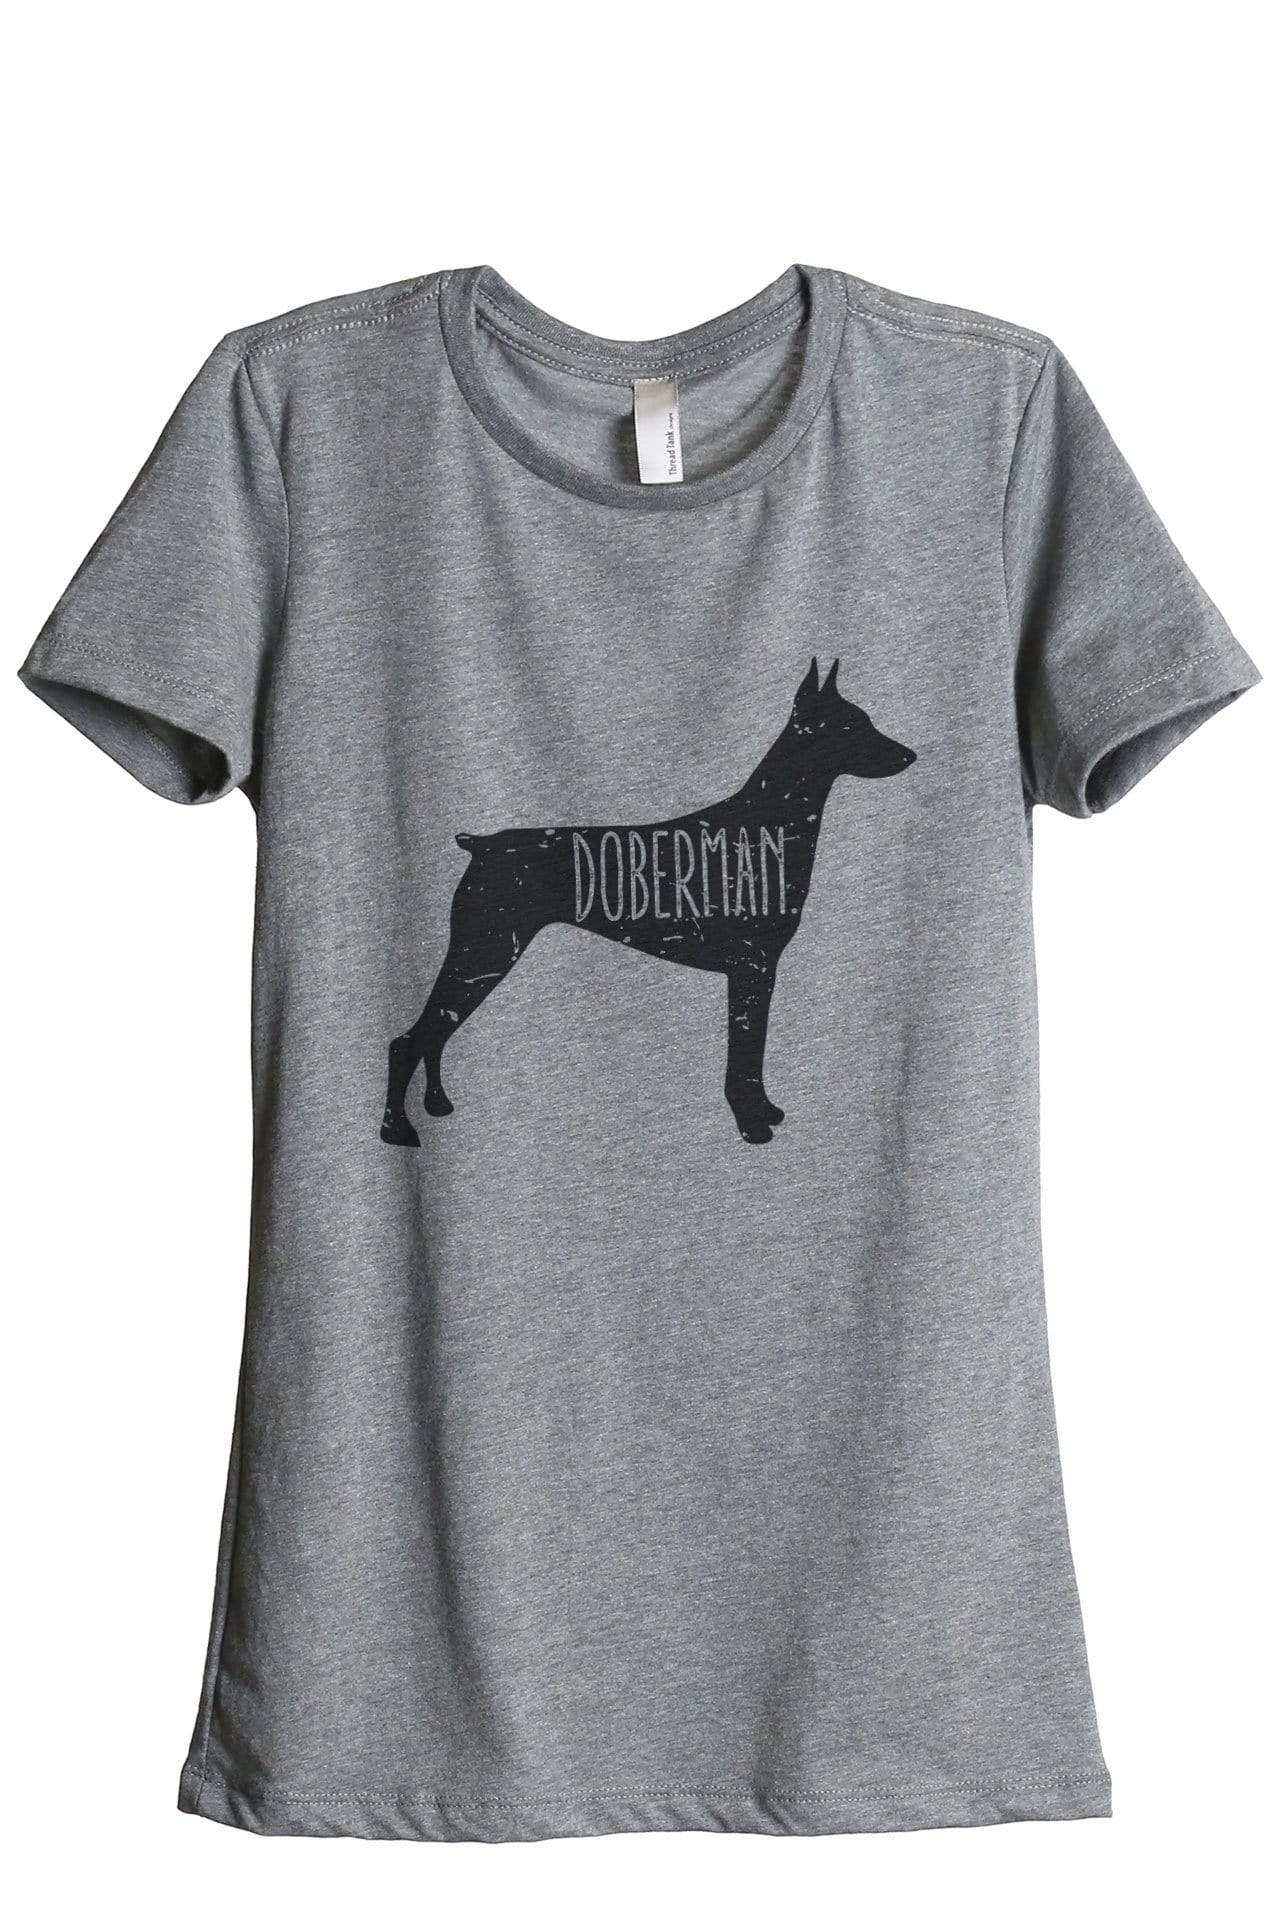 Doberman Dog Silhouette - Thread Tank | Stories You Can Wear | T-Shirts, Tank Tops and Sweatshirts